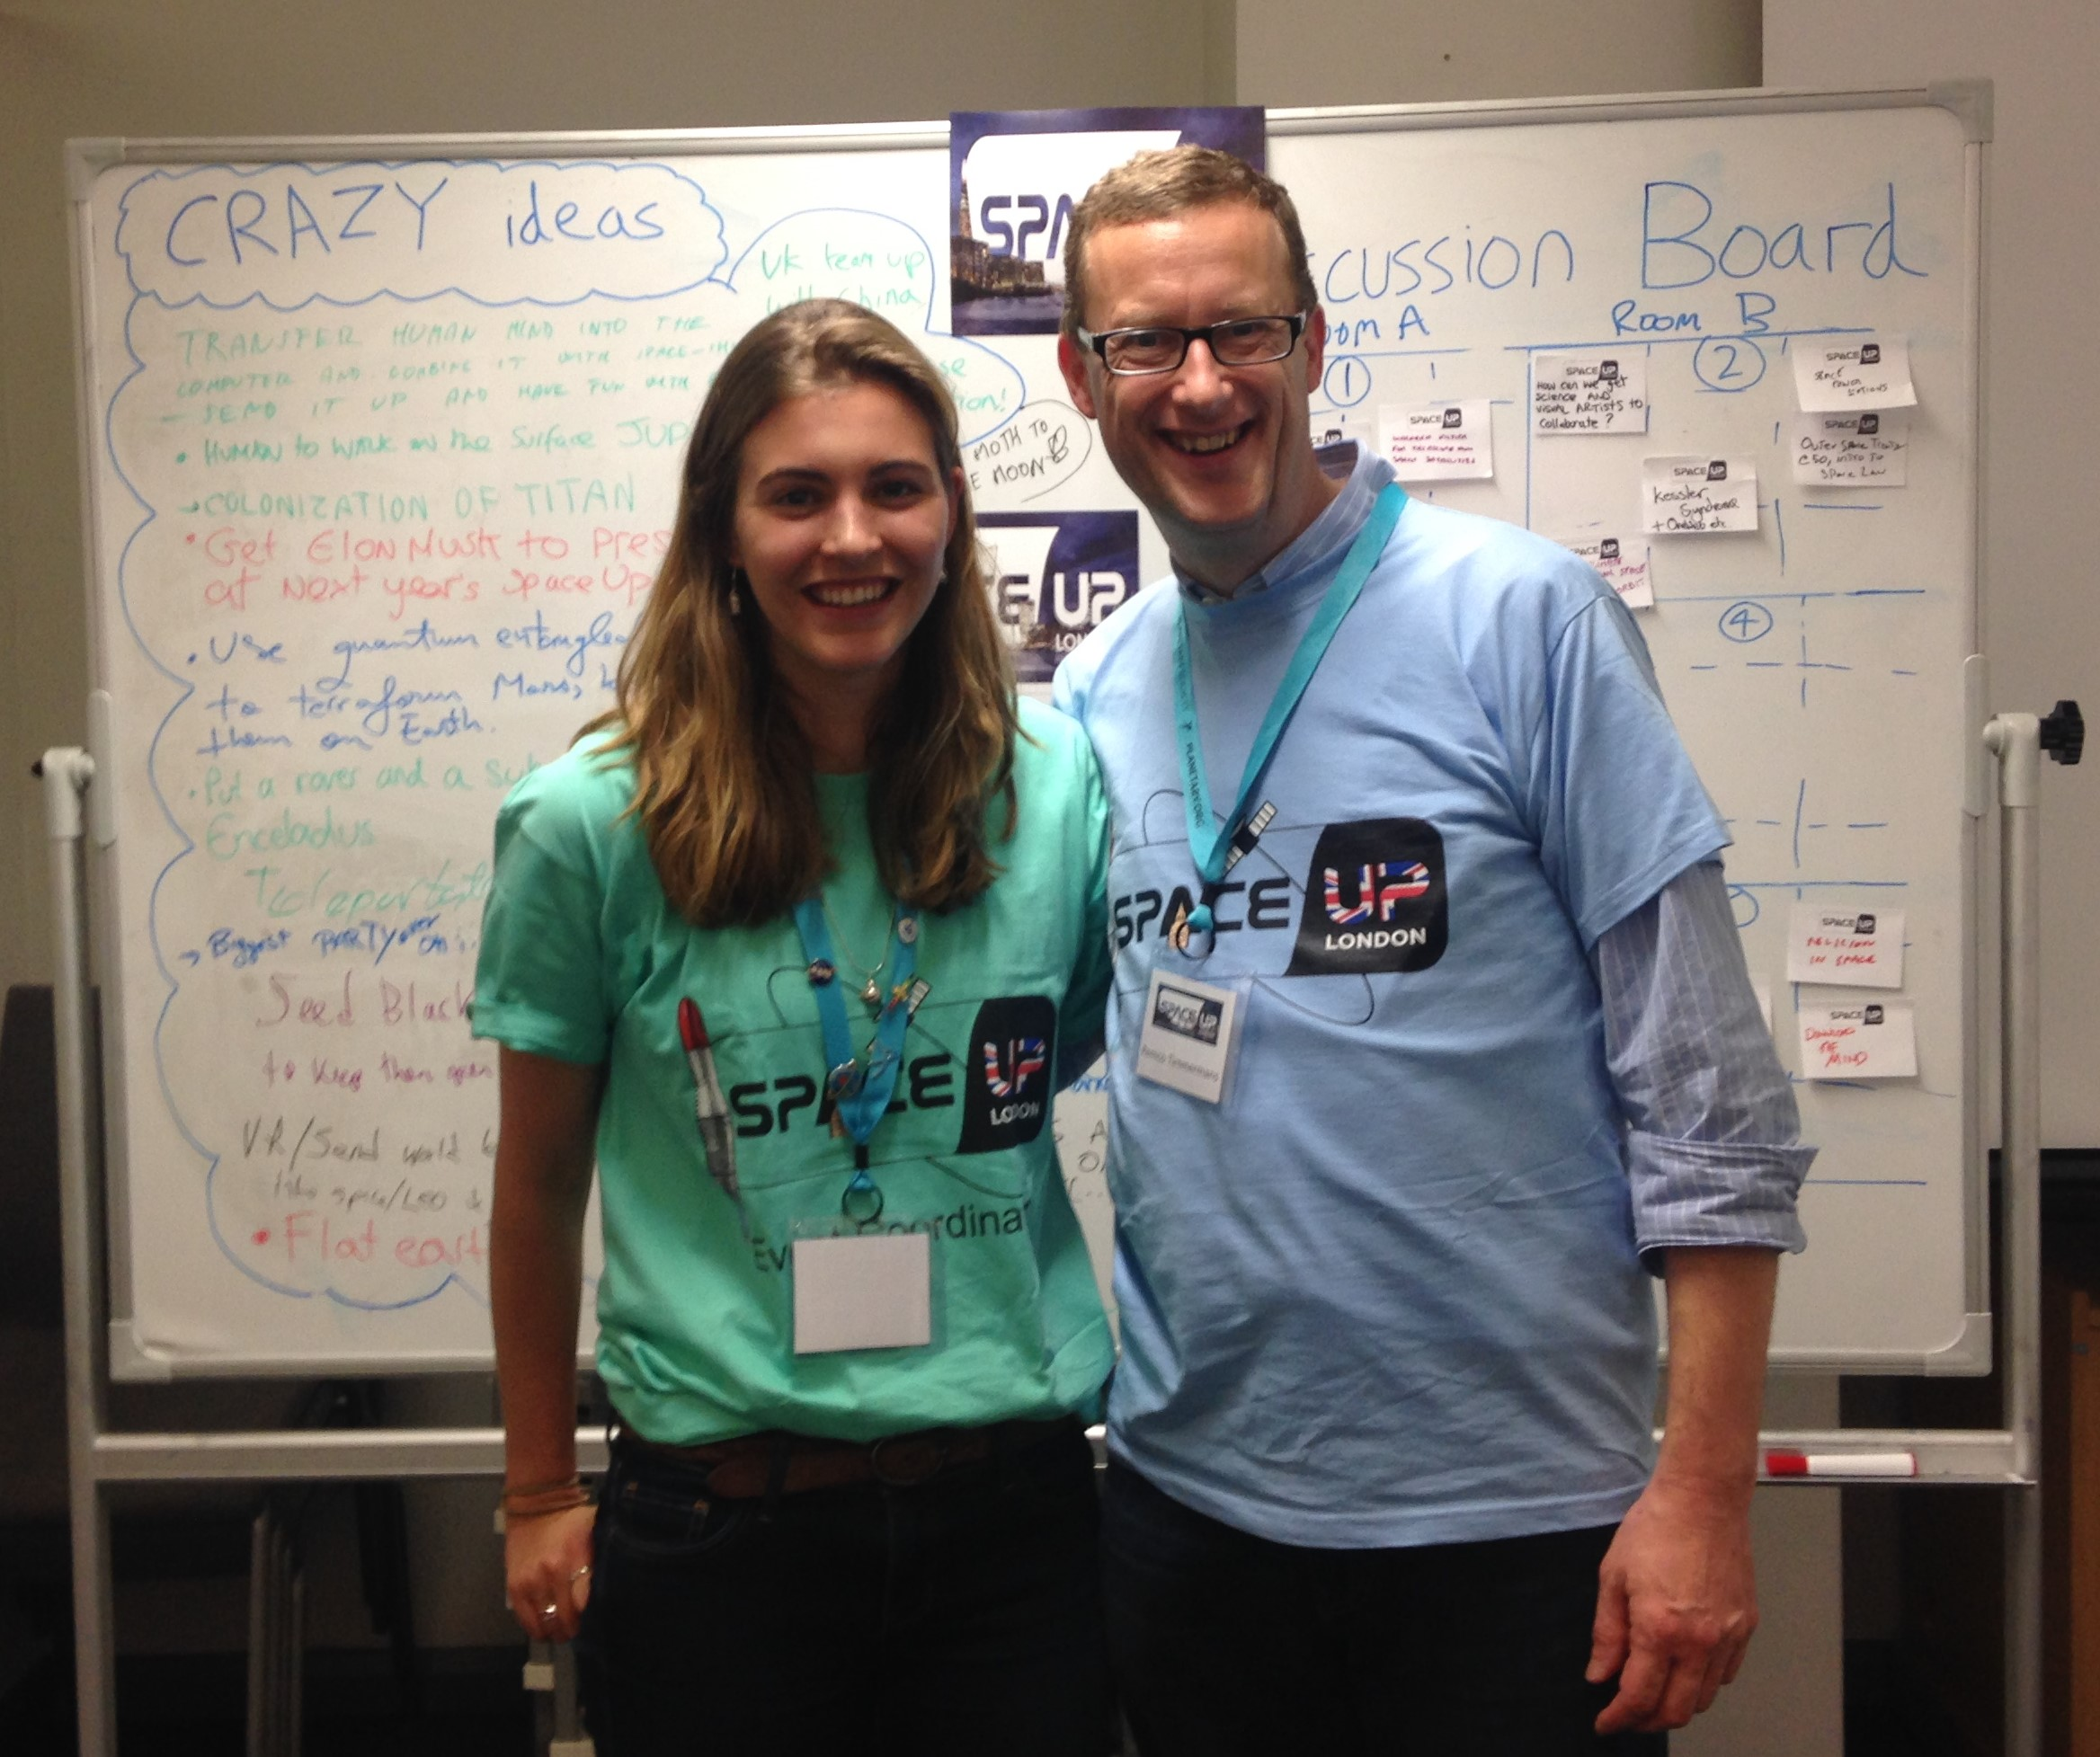 Lead organiser Harriet with SpaceUp CEO Remco Timmermans.JPG